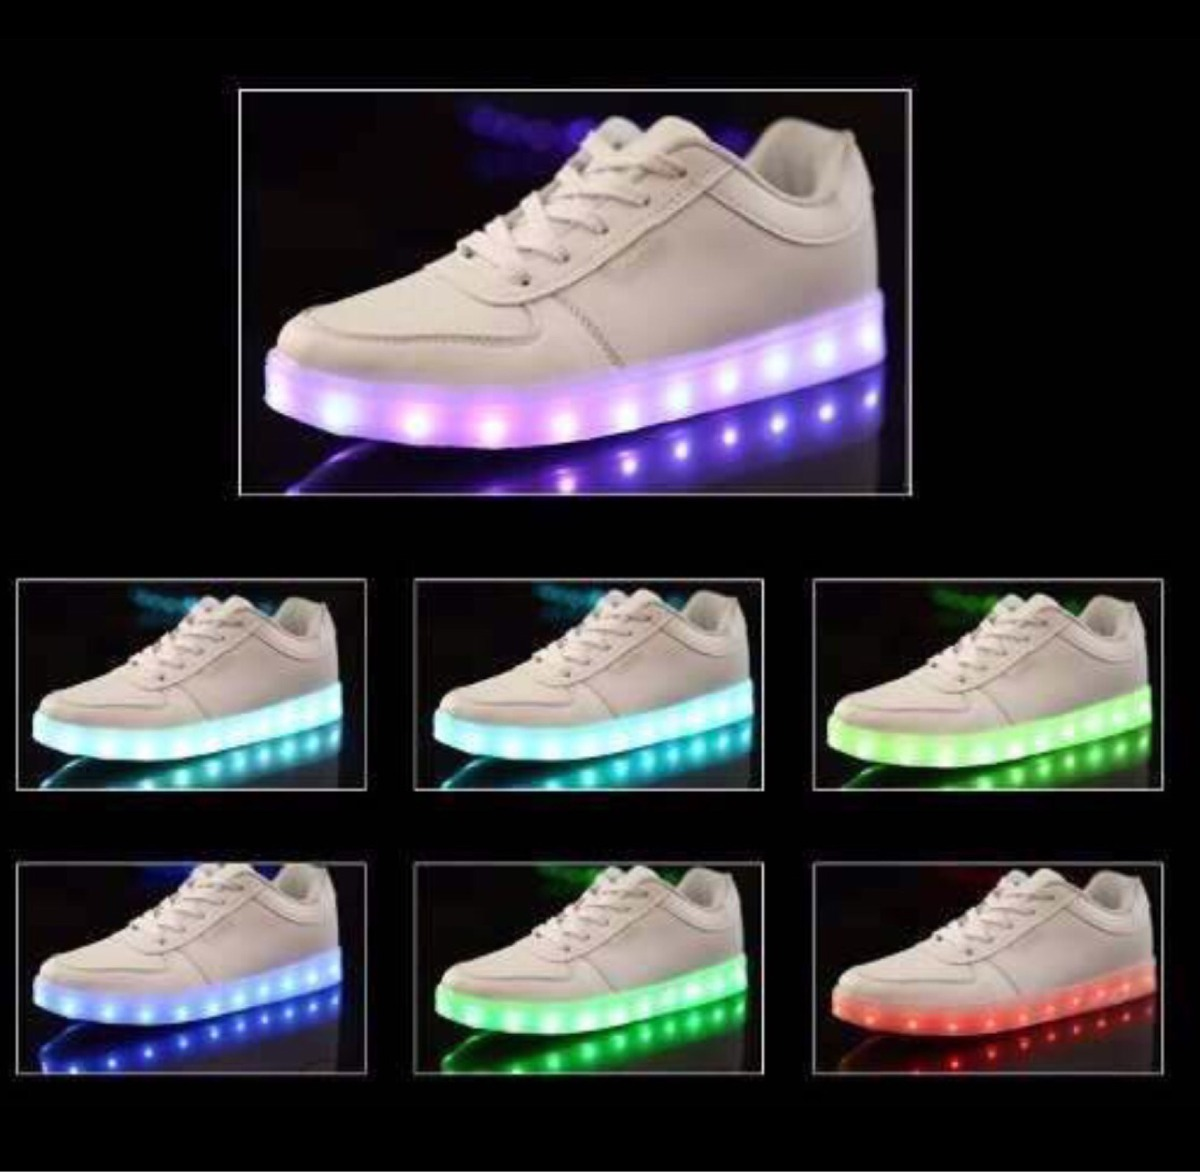 Tenis led led shoes zapatos luces varios colores for Luces led colores